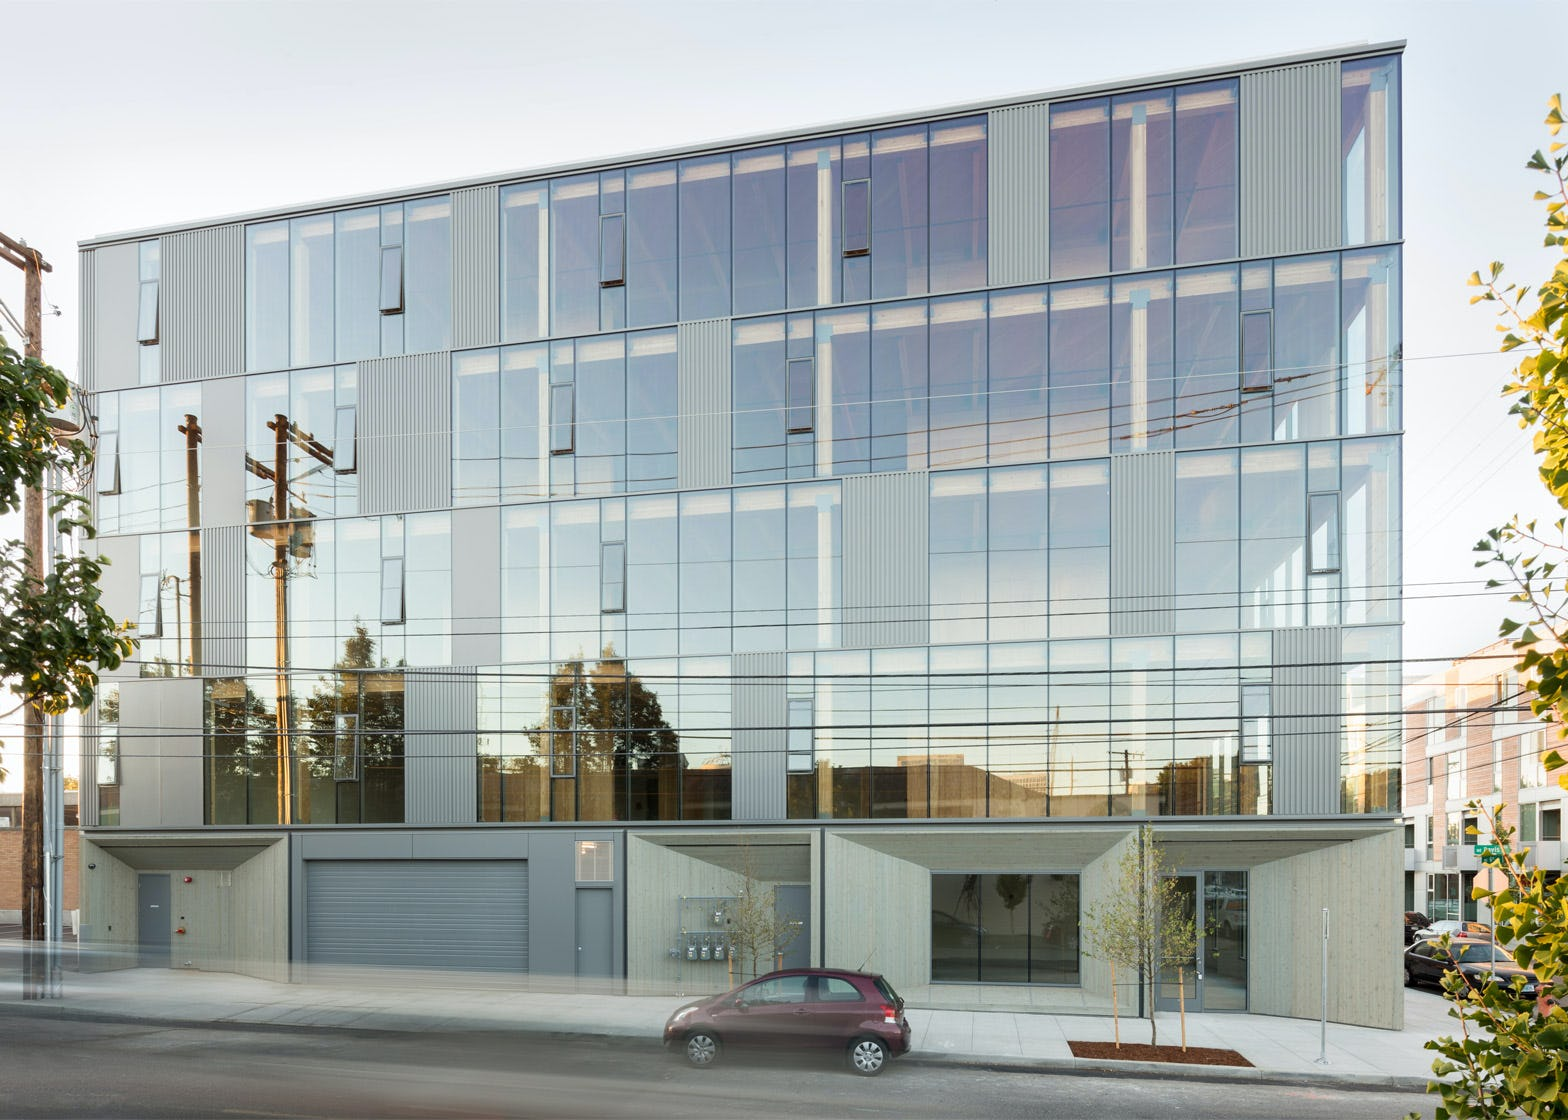 Framework worksarchitecture portland oregon usa cross laminated timber office building dezeen 1568 8